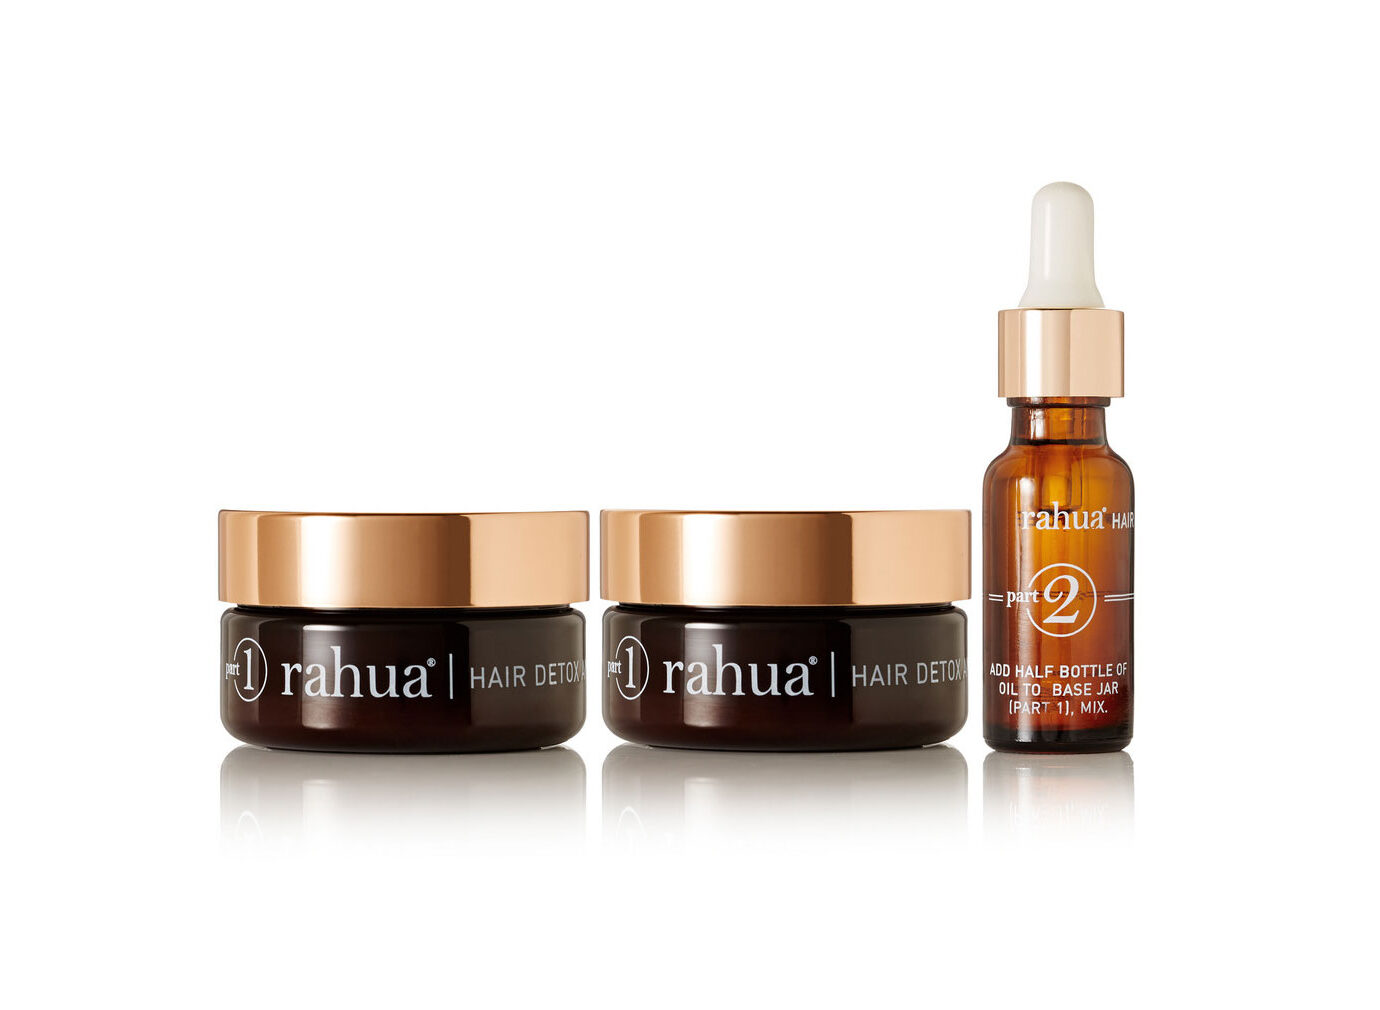 Rahua Hair Detox & Renewal Treatment Kit